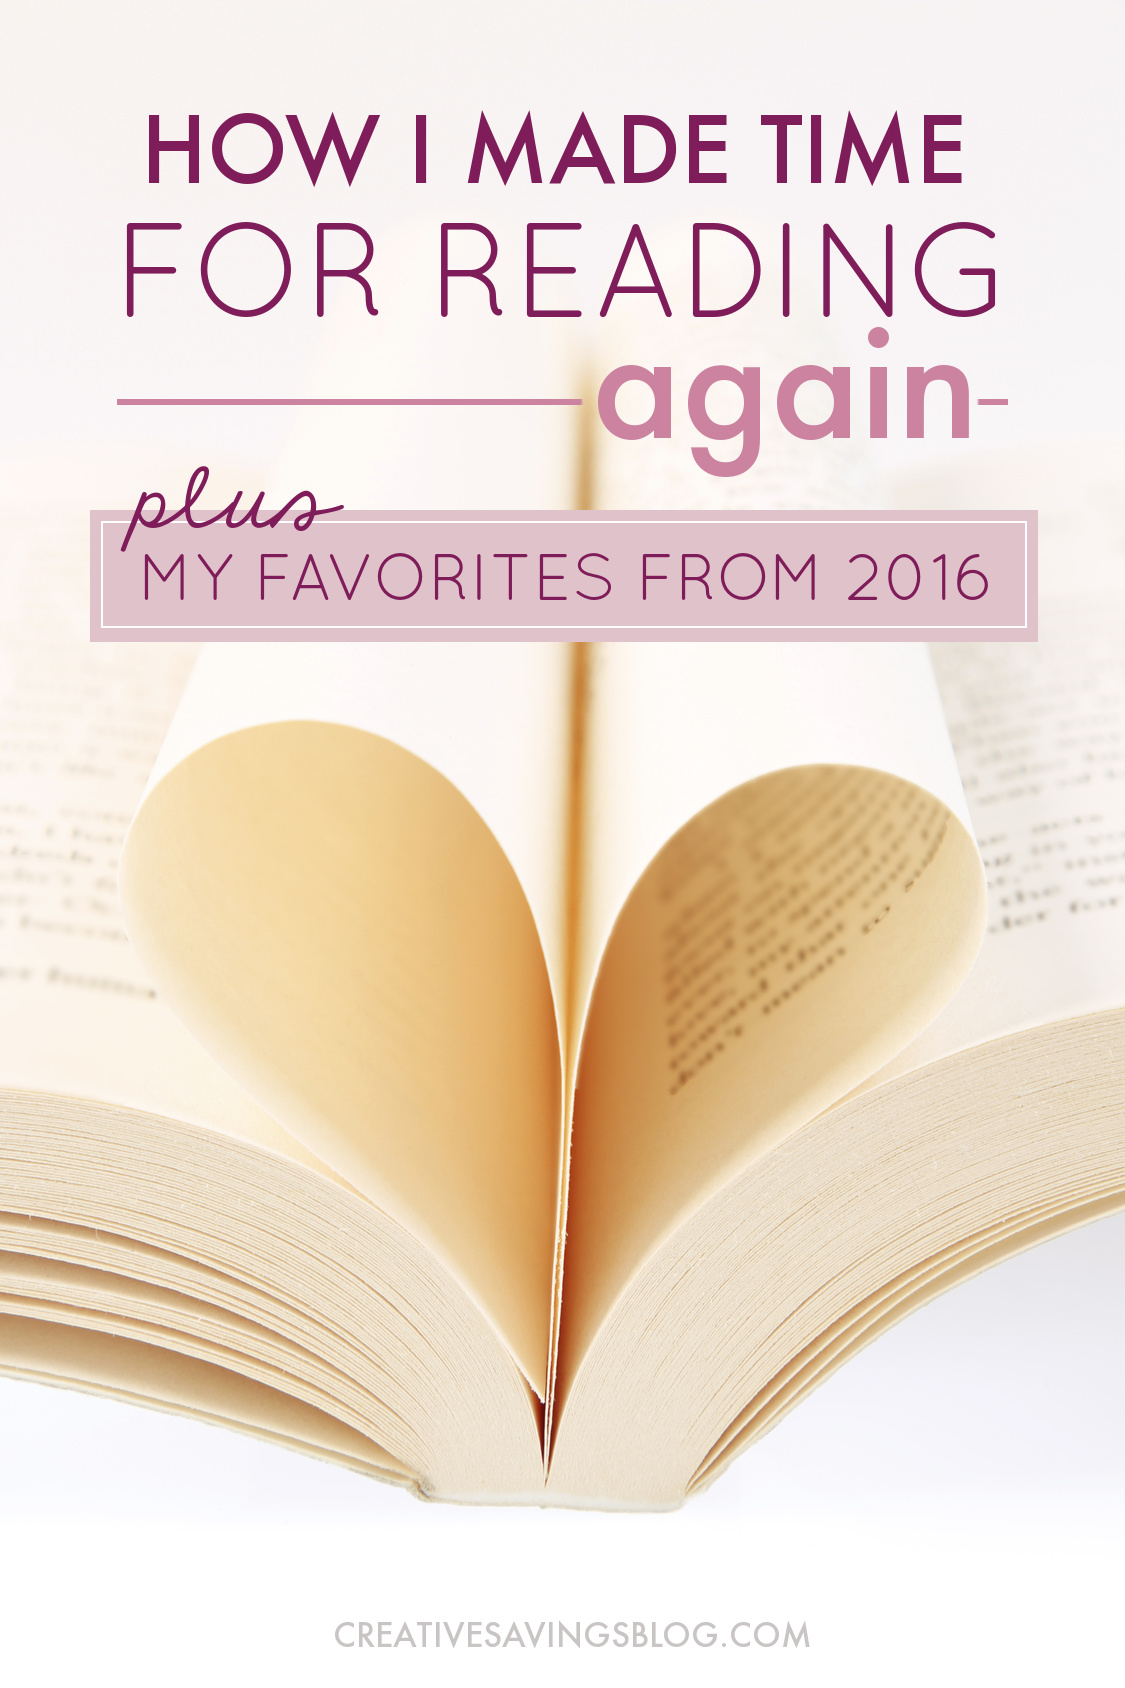 If you're frustrated because you don't have much {if any} time to read, I've got three practical solutions to help make reading a priority in your life again. Plus, I'm sharing my FAVORITE books from 2016 to help jumpstart your list! #reading #timeforreading #favoritereads #fridayfavorites #howtomaketimeforreading